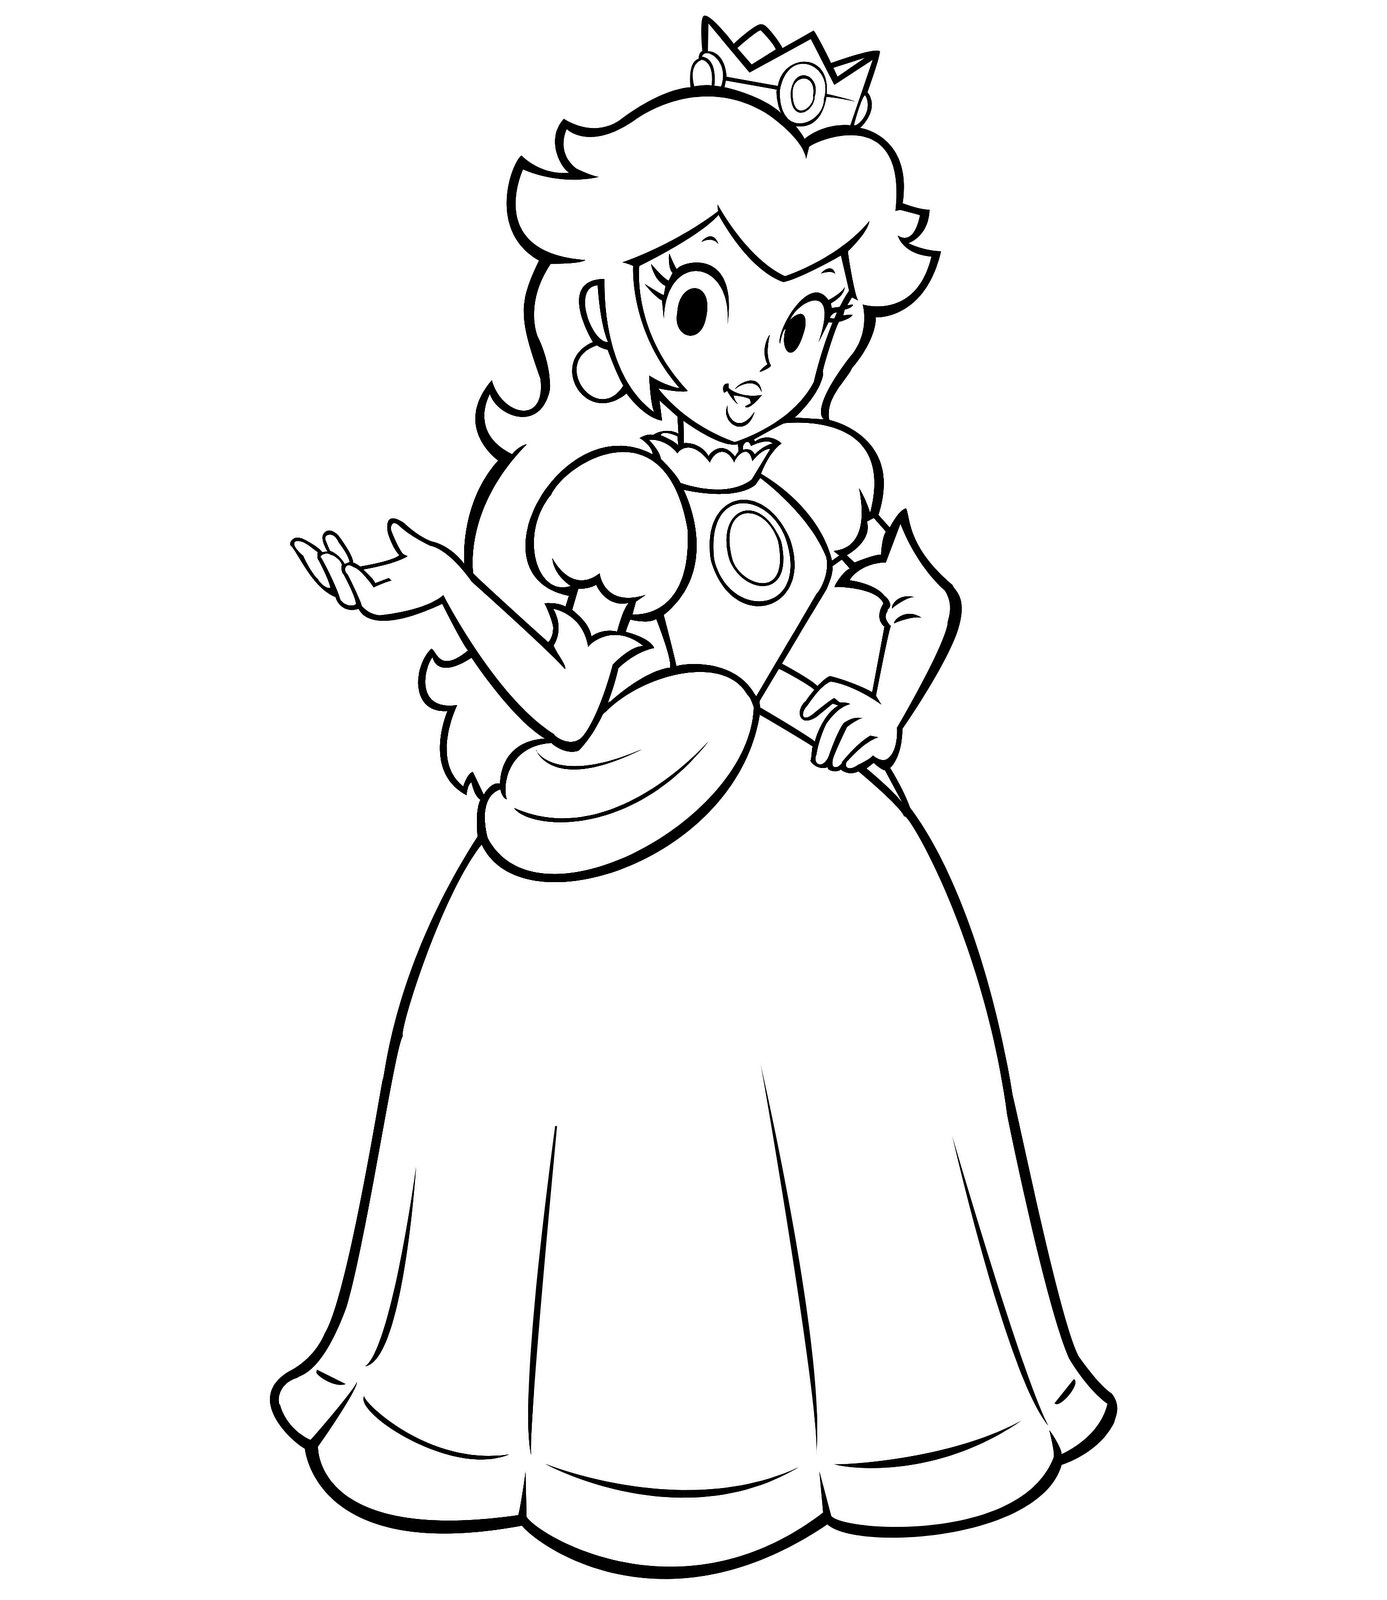 Free Princess Peach Coloring Pages For Kids Princess Coloring Image